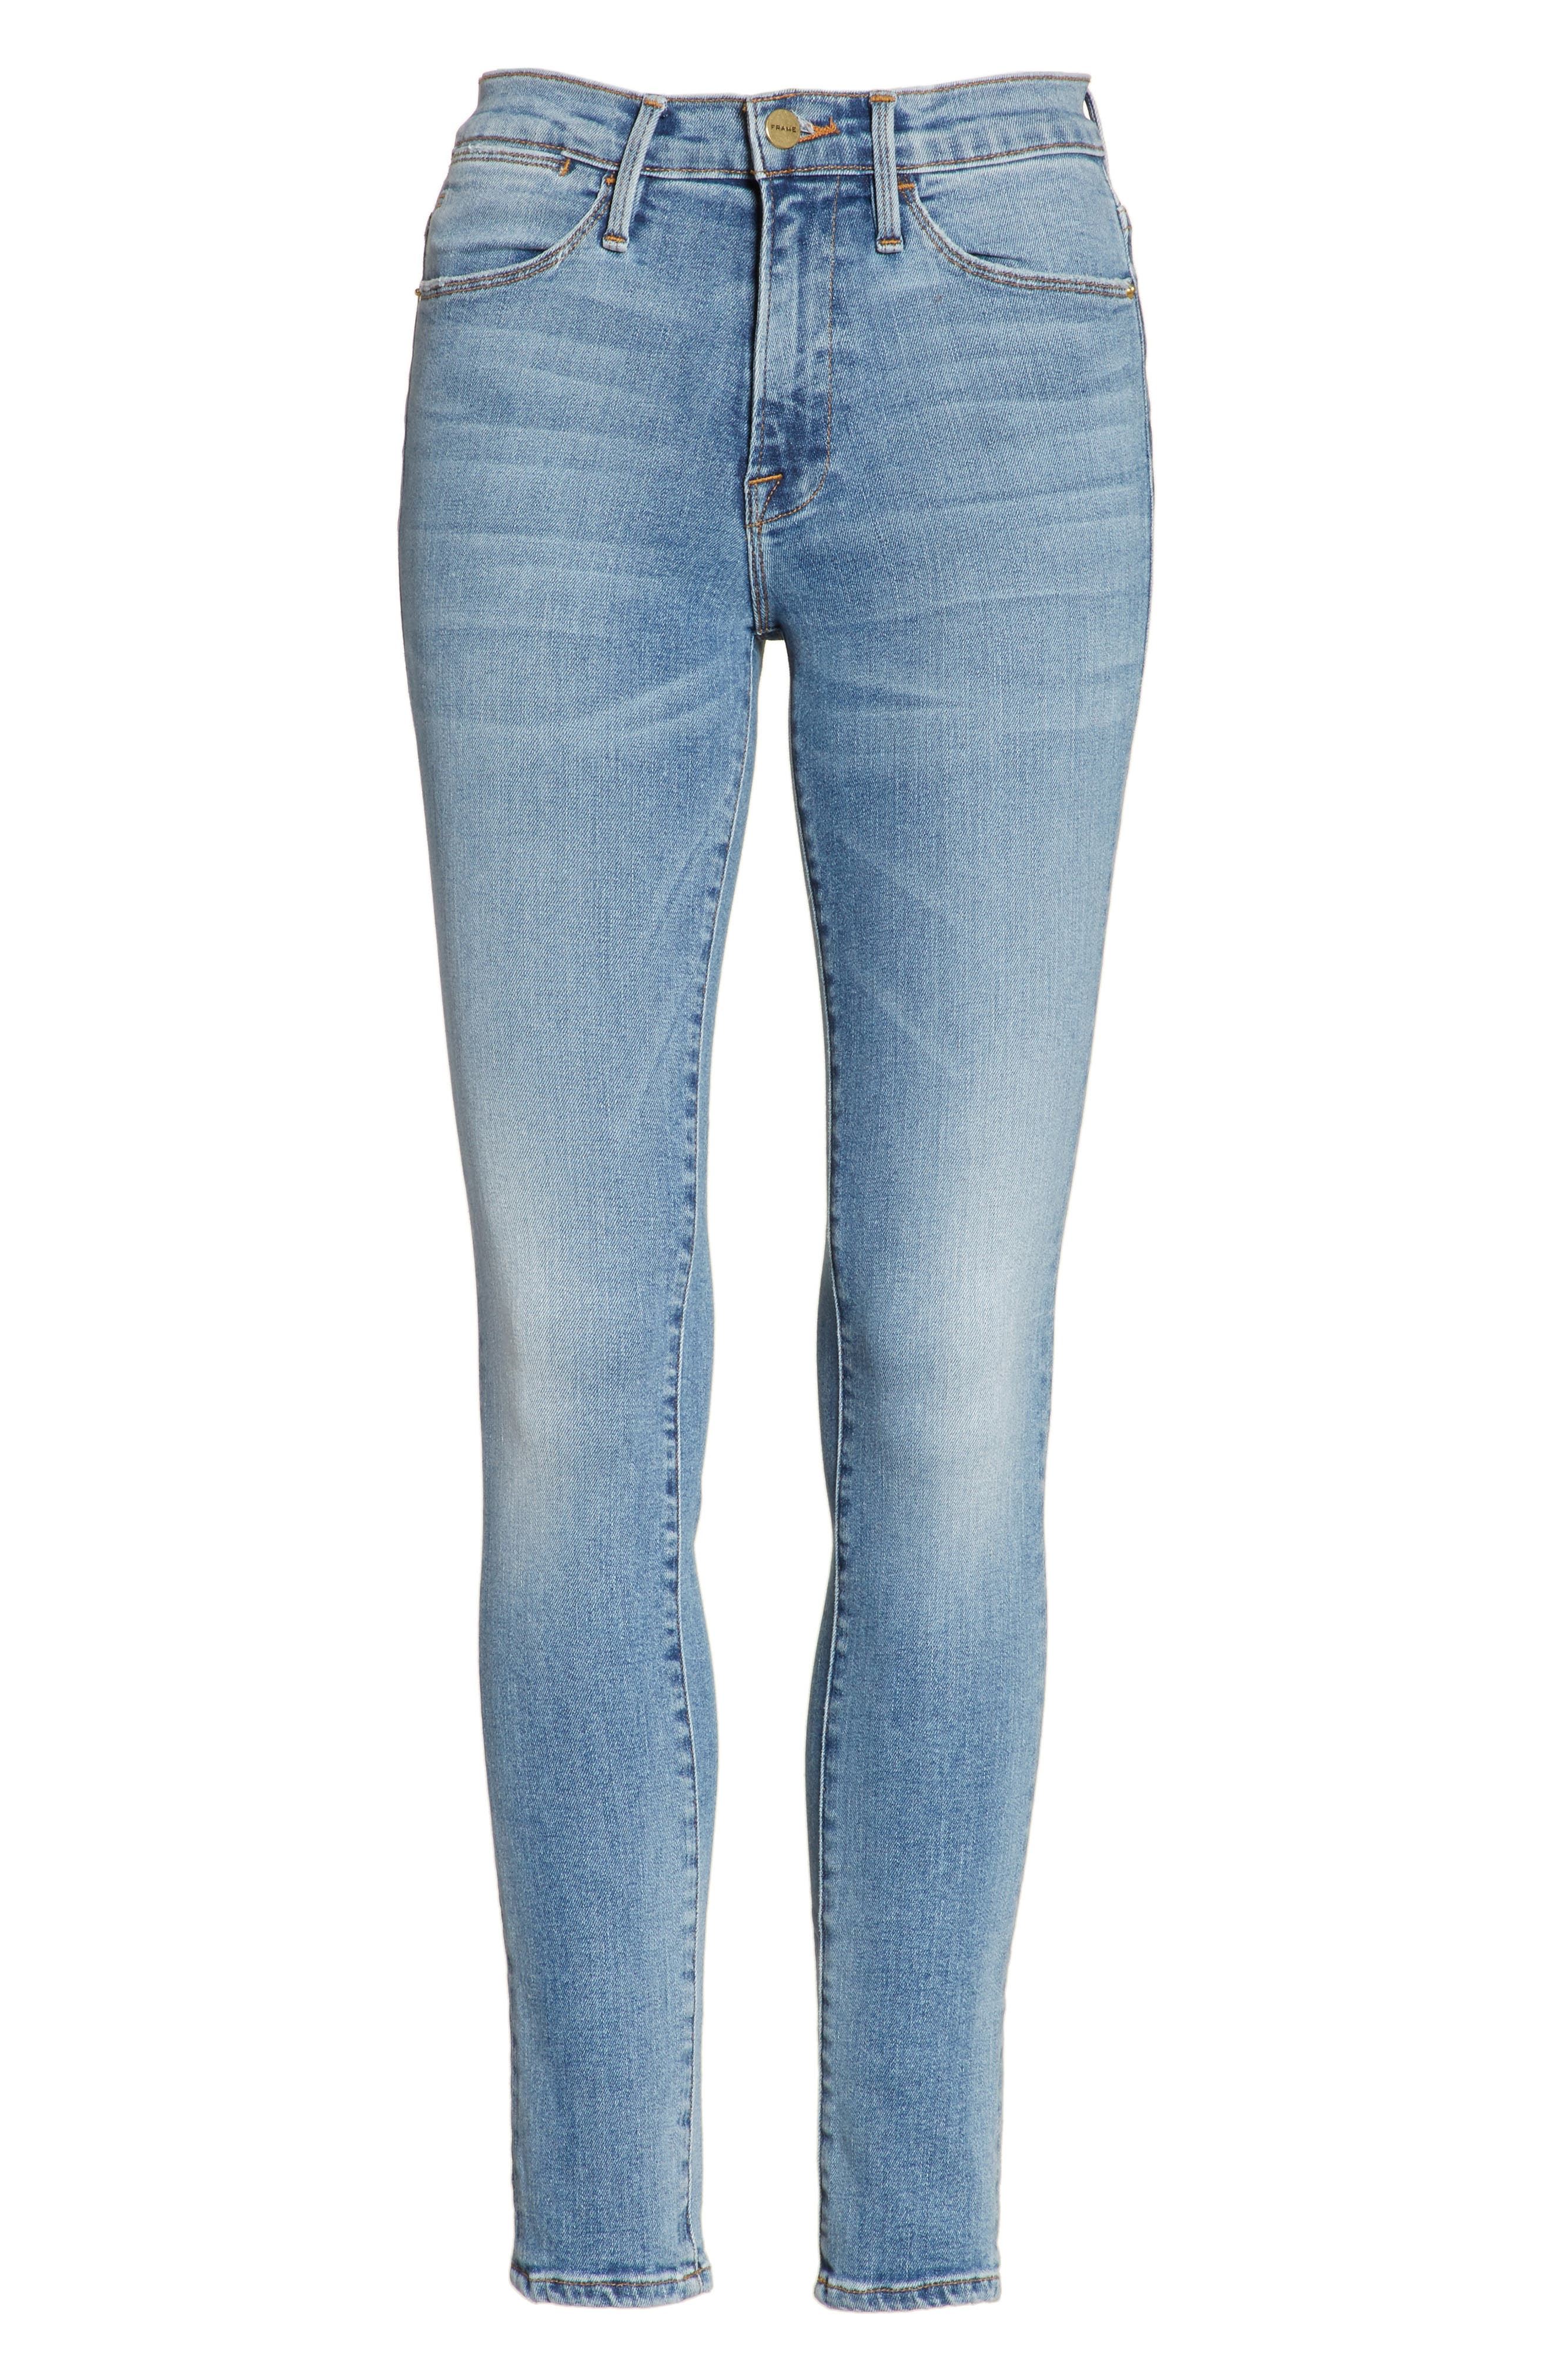 Le High Crop Skinny Jeans,                             Alternate thumbnail 7, color,                             LOEHR